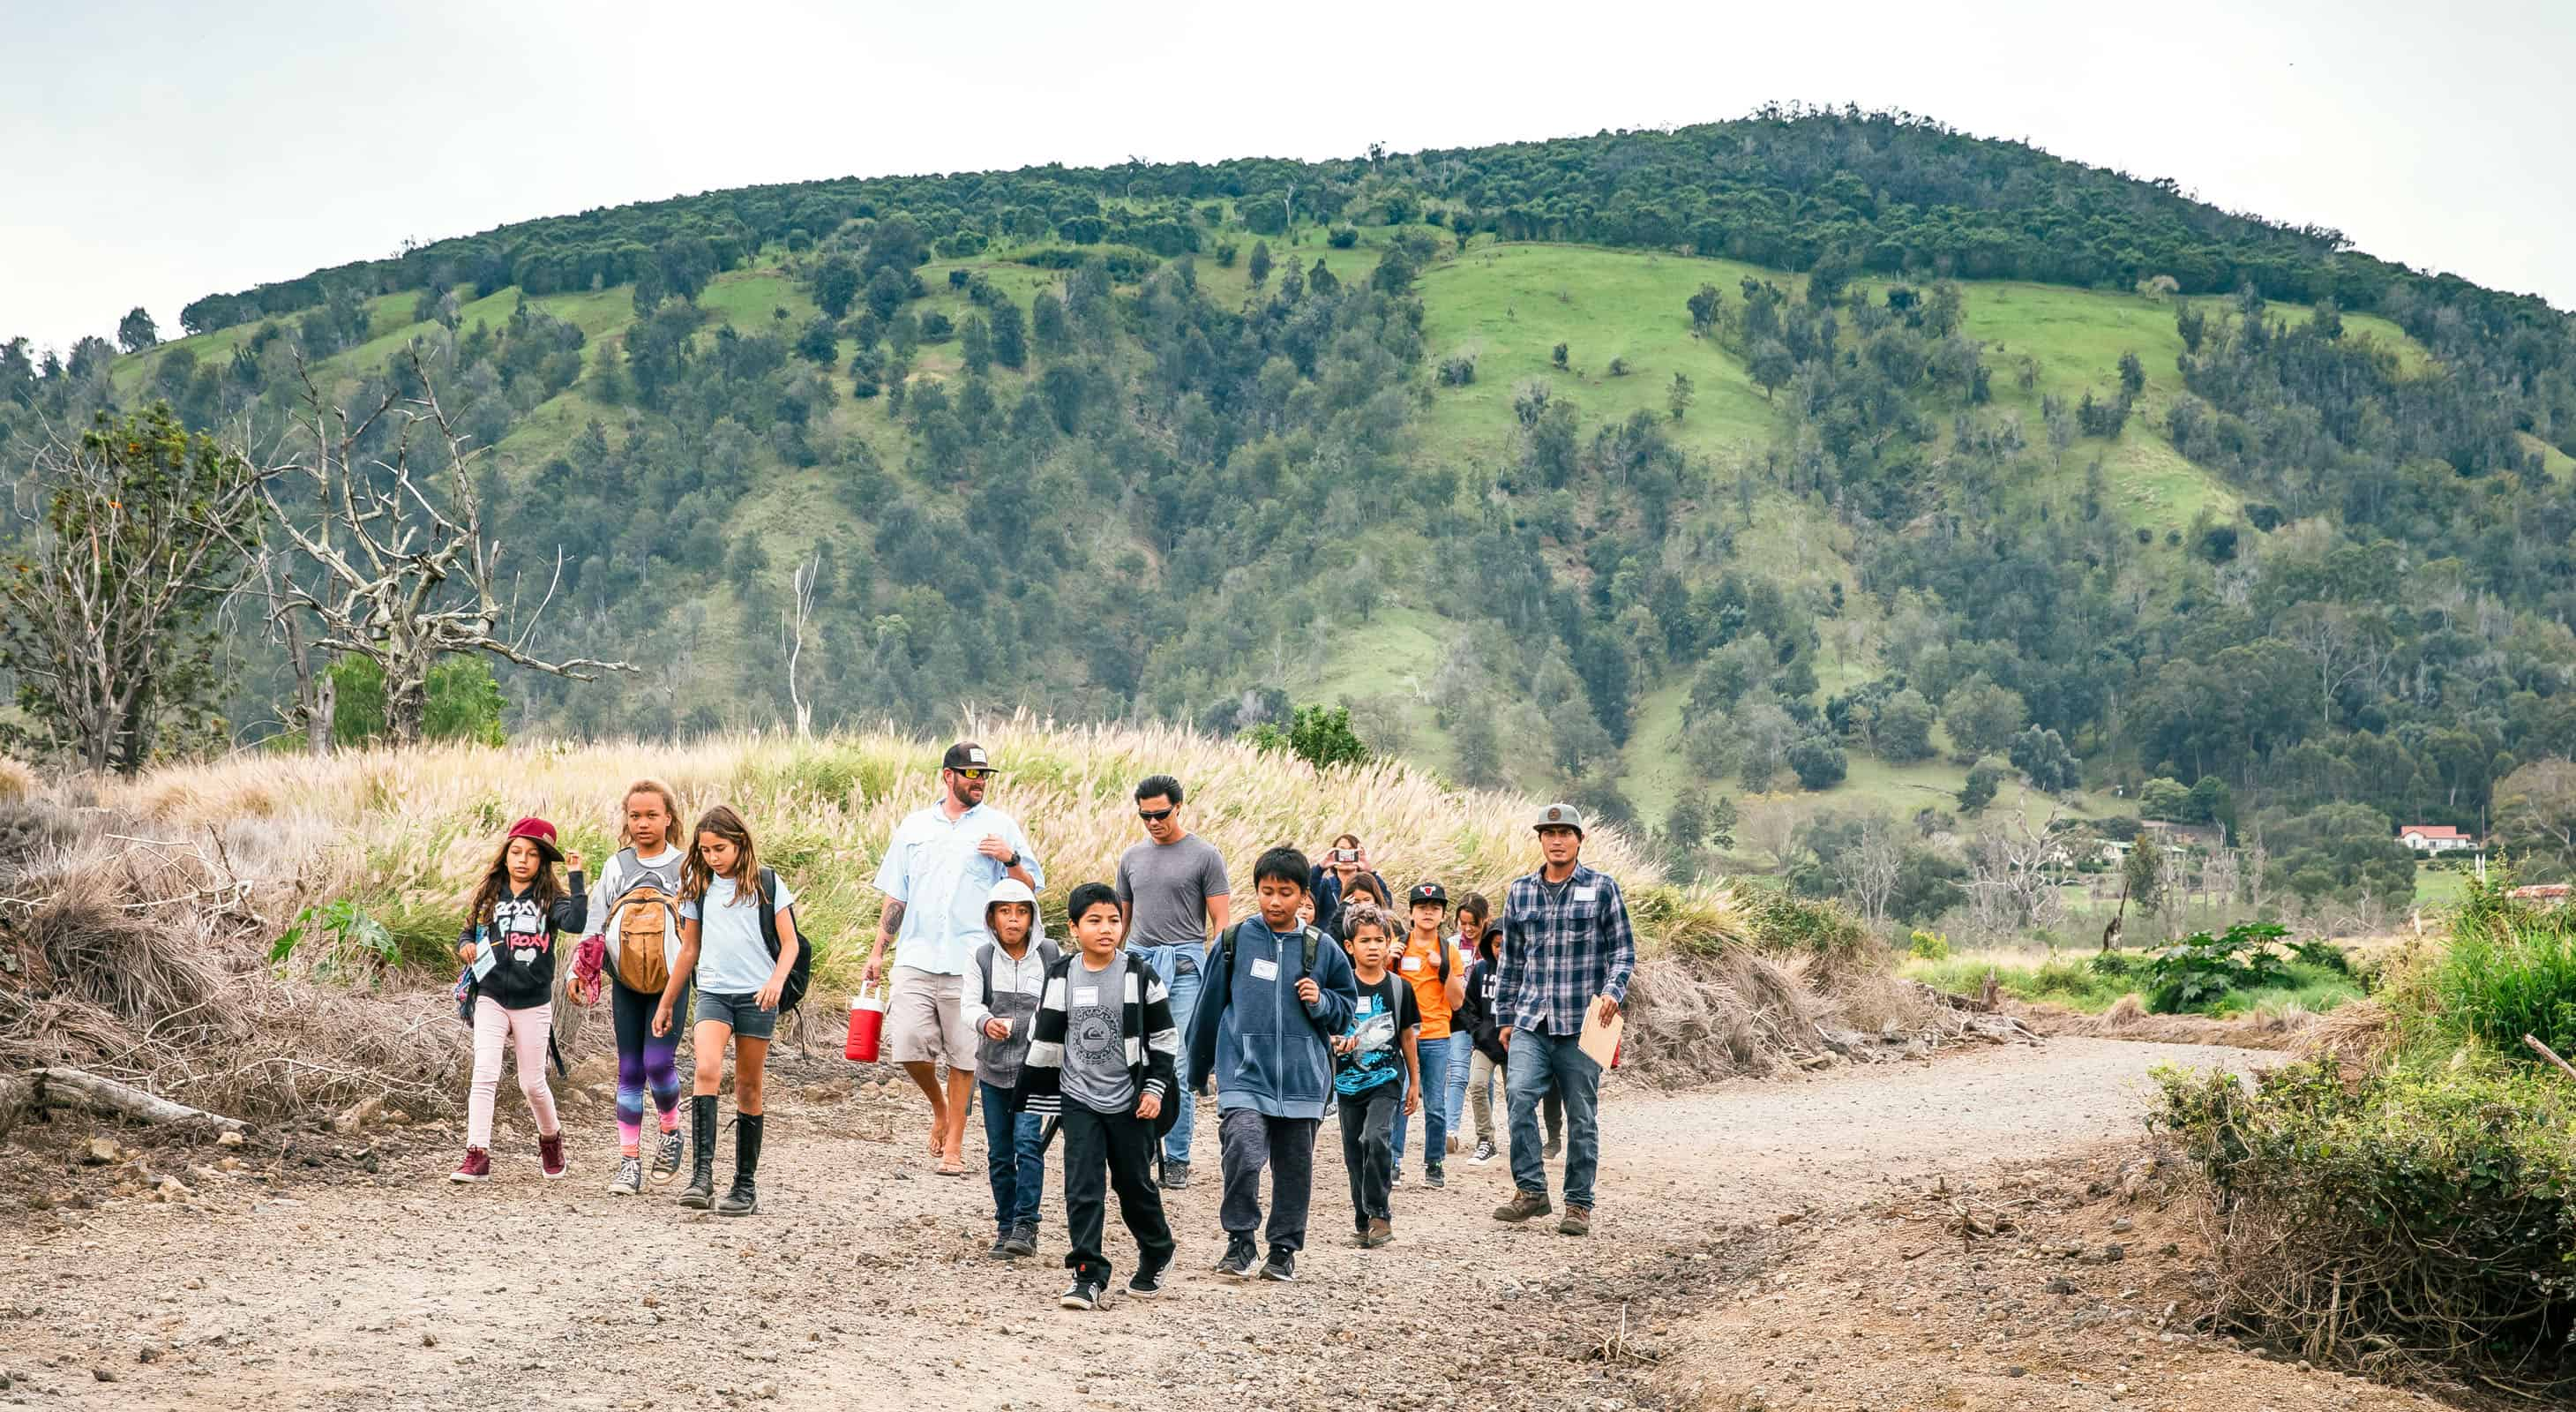 A group of young students walking on a road near Puʻu Waʻawaʻa